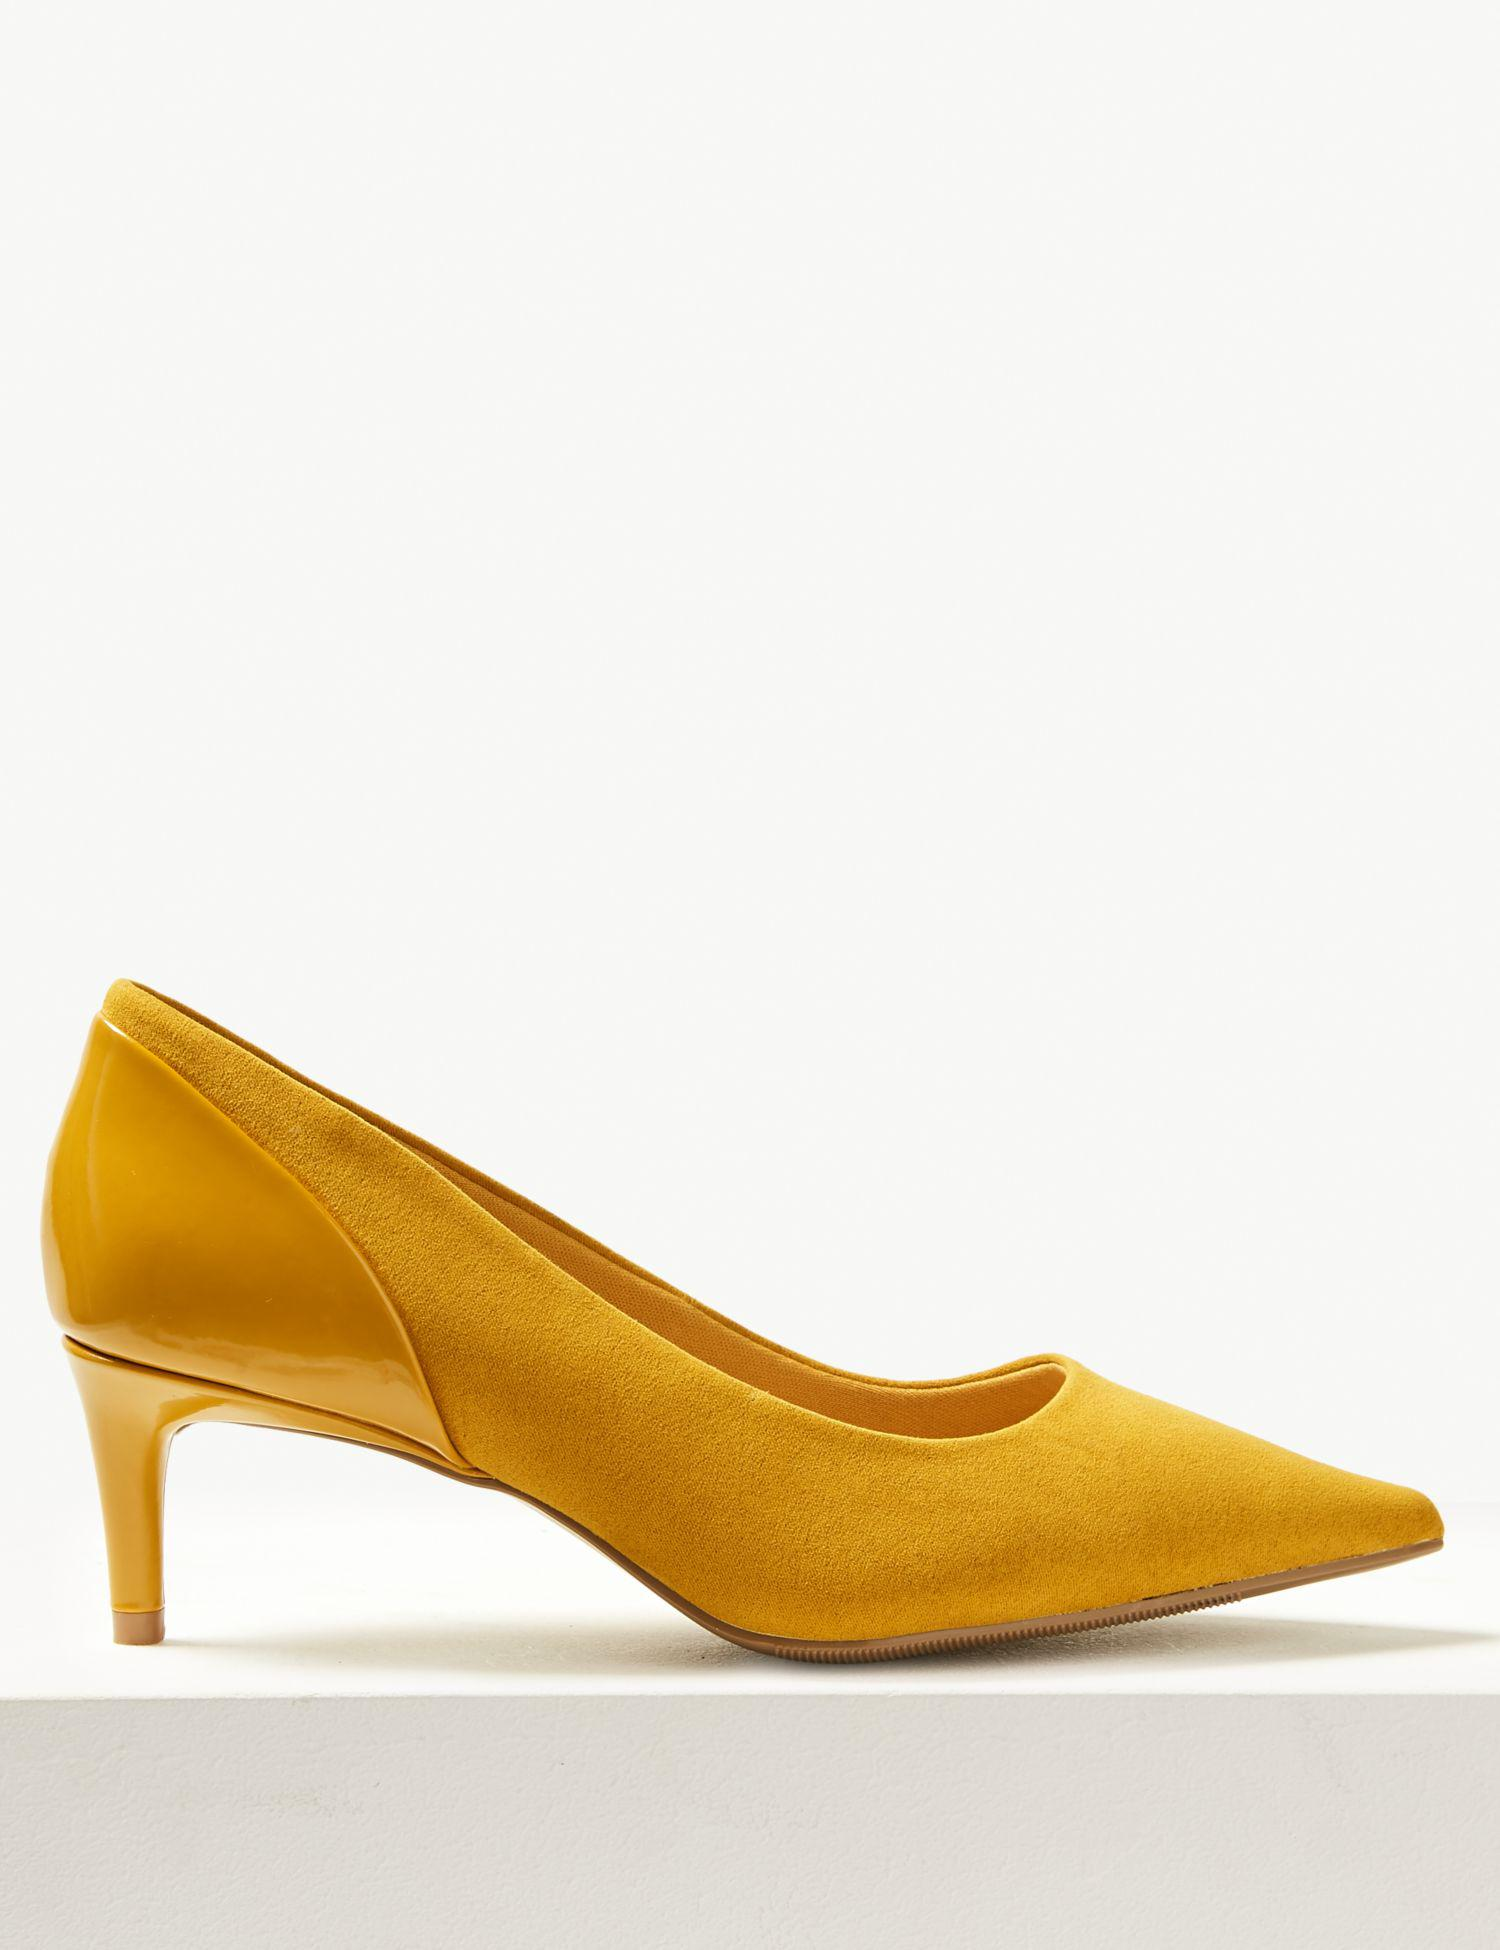 6ac48e905a Marks & Spencer Wide Fit Kitten Heel Court Shoes - Lyst